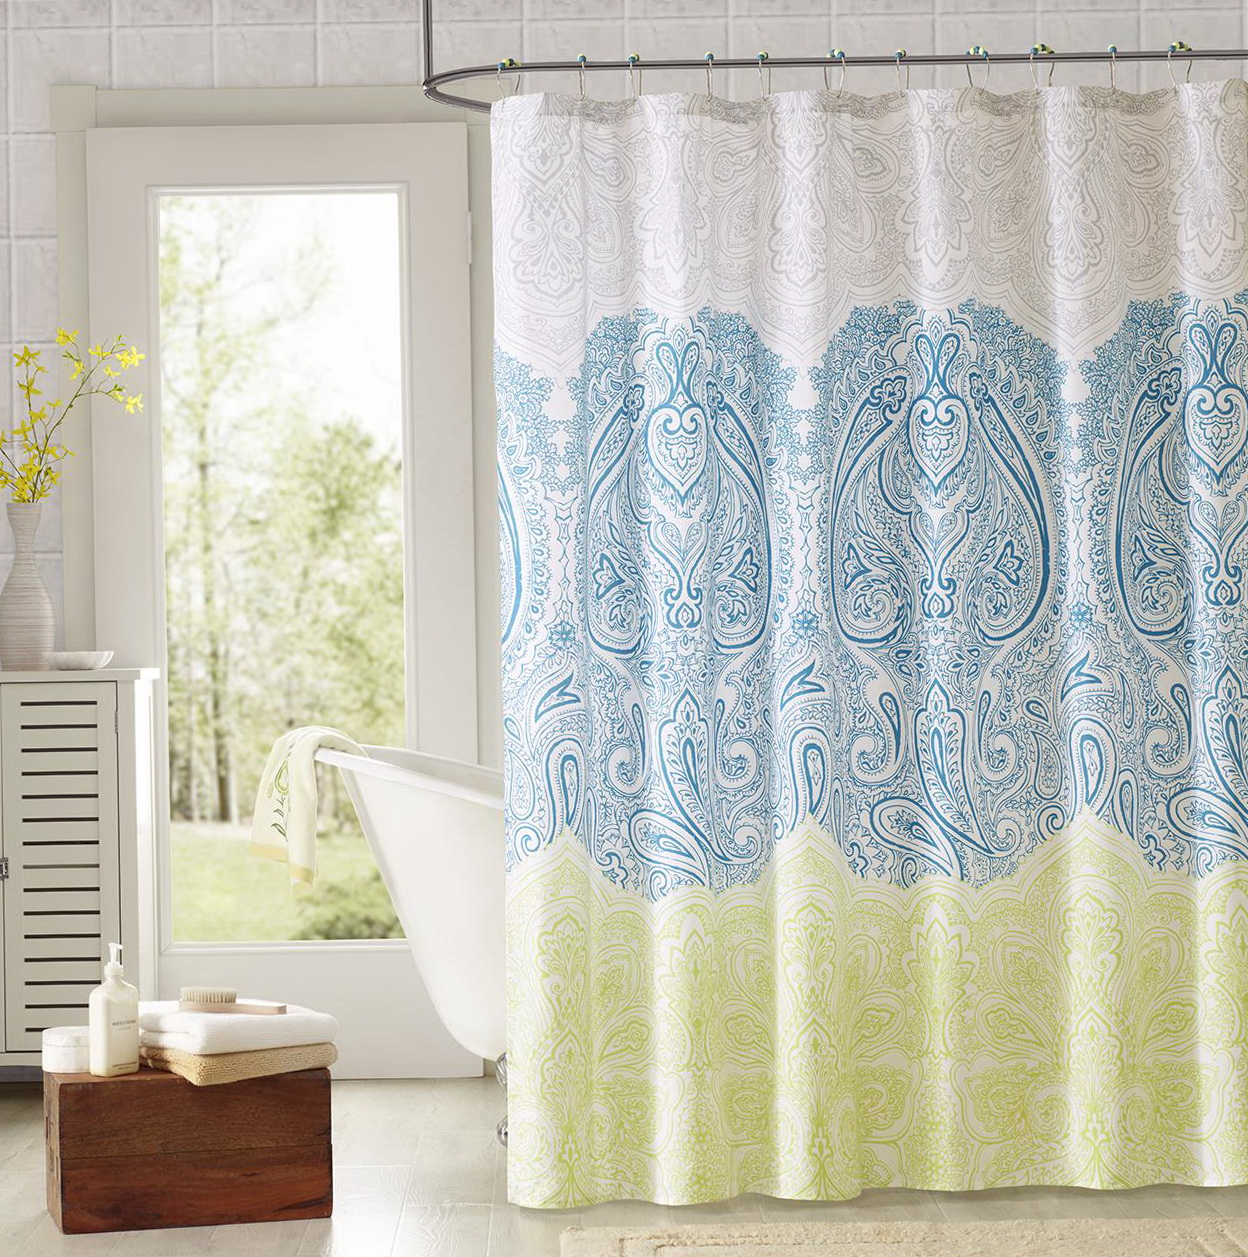 Shower Curtain With Valance Sets